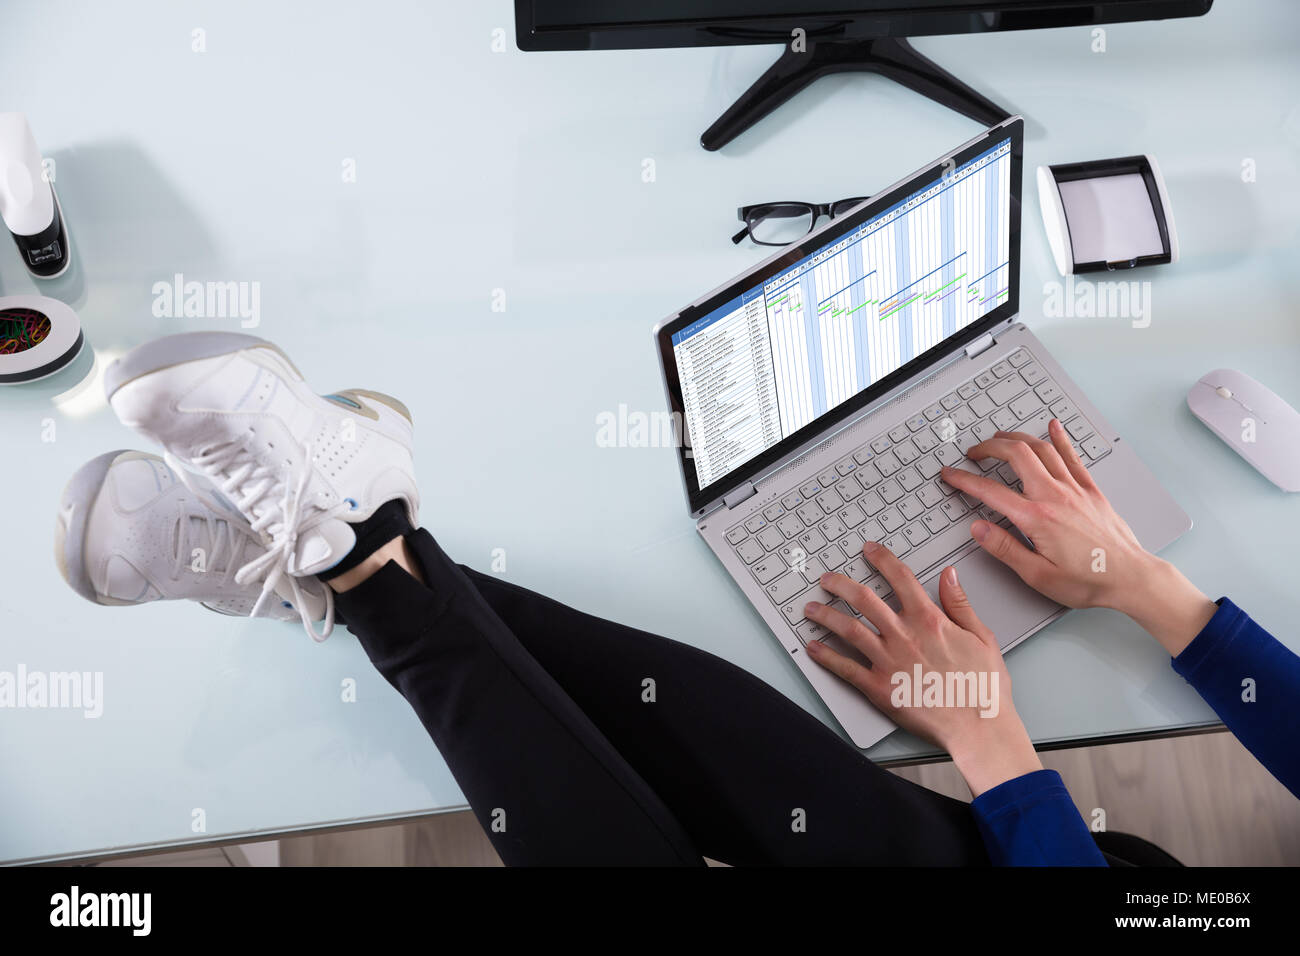 Businessperson's Hand Working On Gantt Chart Using Laptop With Crossed Legs On Office Desk - Stock Image